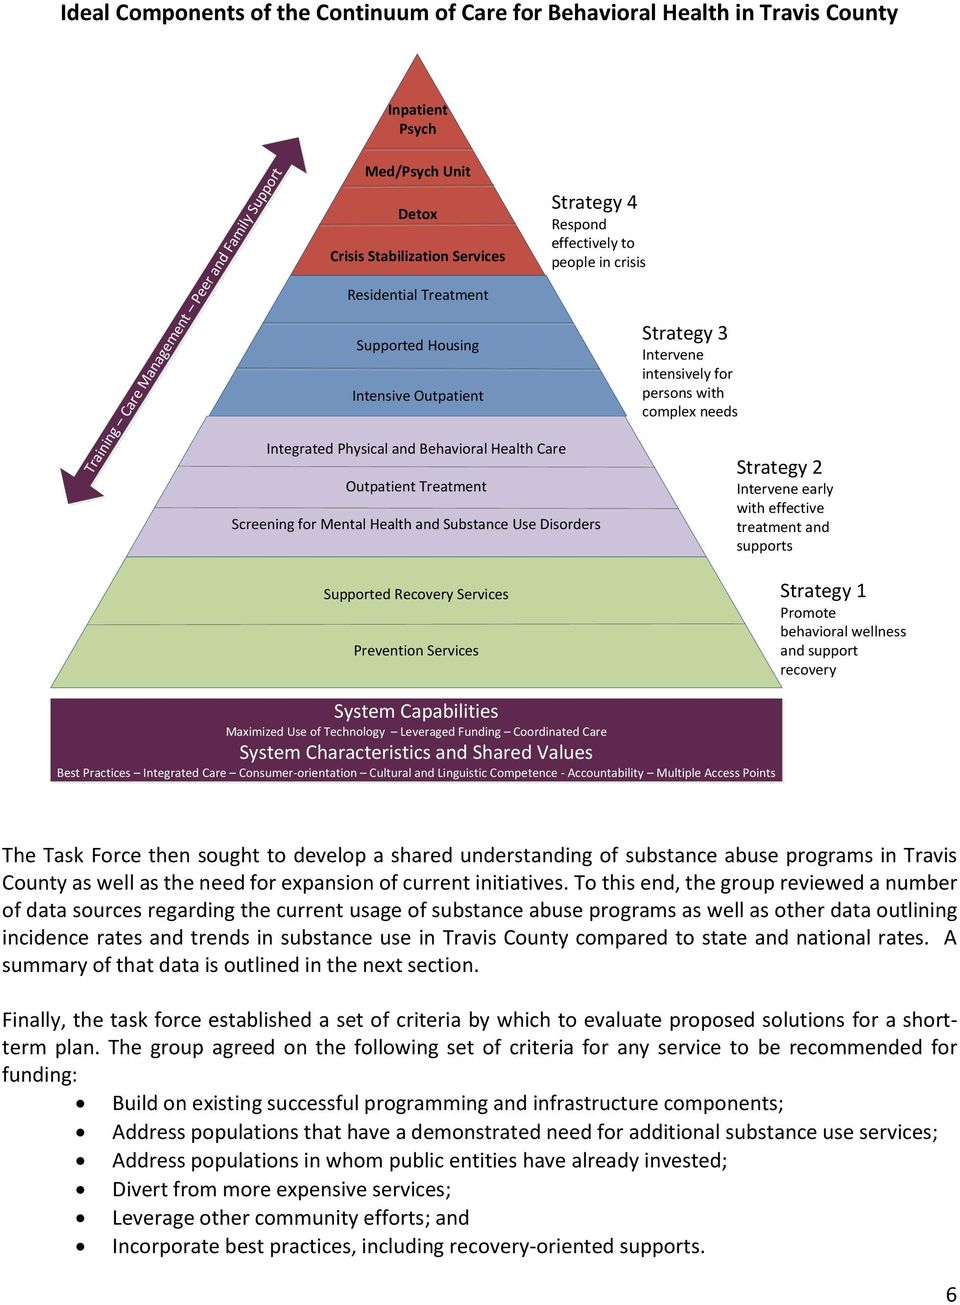 Mental Health and Substance Use Disorders Strategy 3 Intervene intensively for persons with complex needs Strategy 2 Intervene early with effective treatment and supports Supported Recovery Services